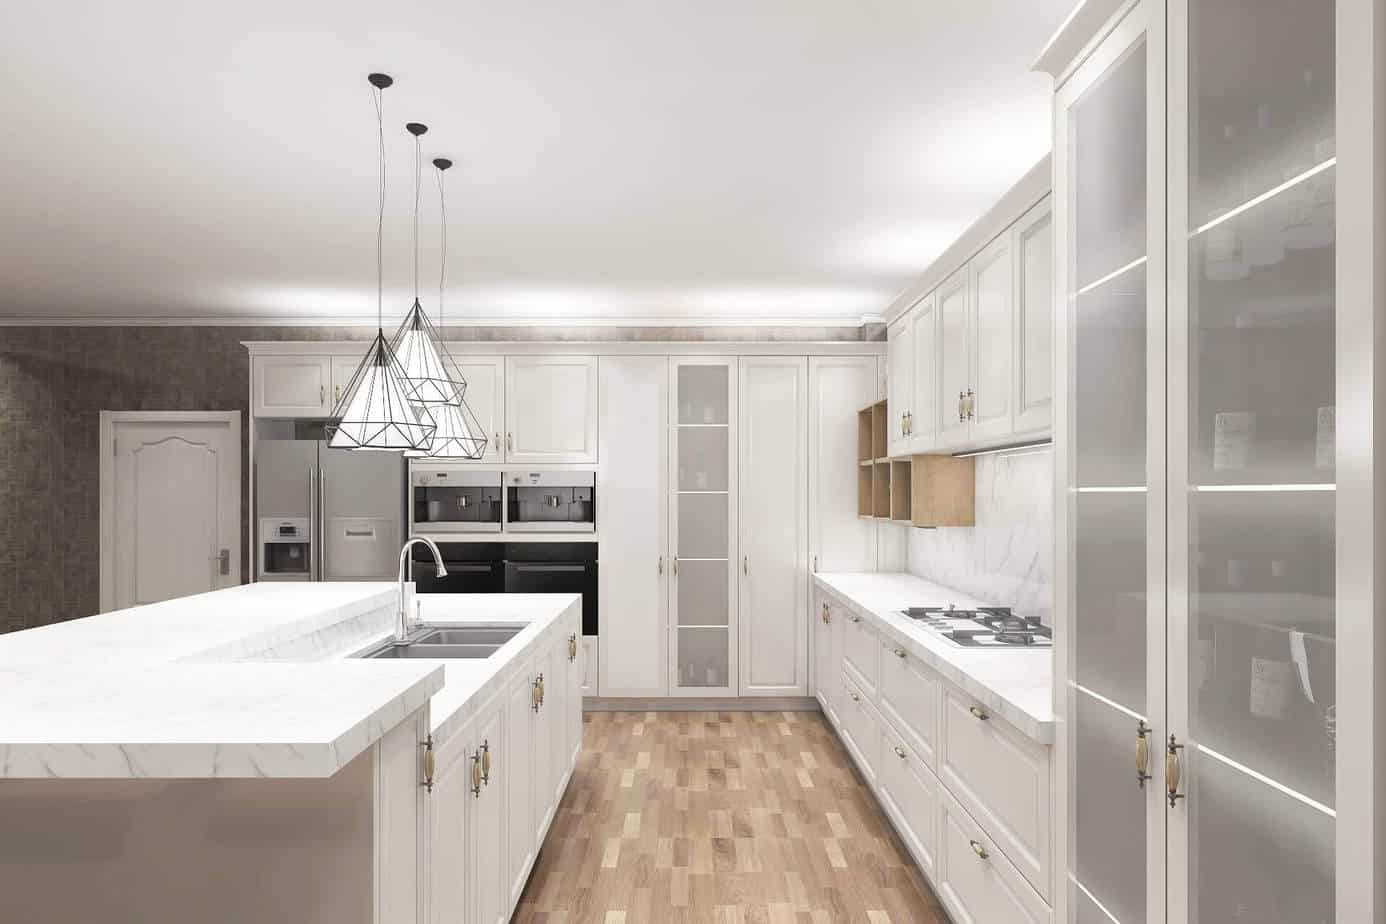 Flat Pack Solid Wood Kitchen Cabinets